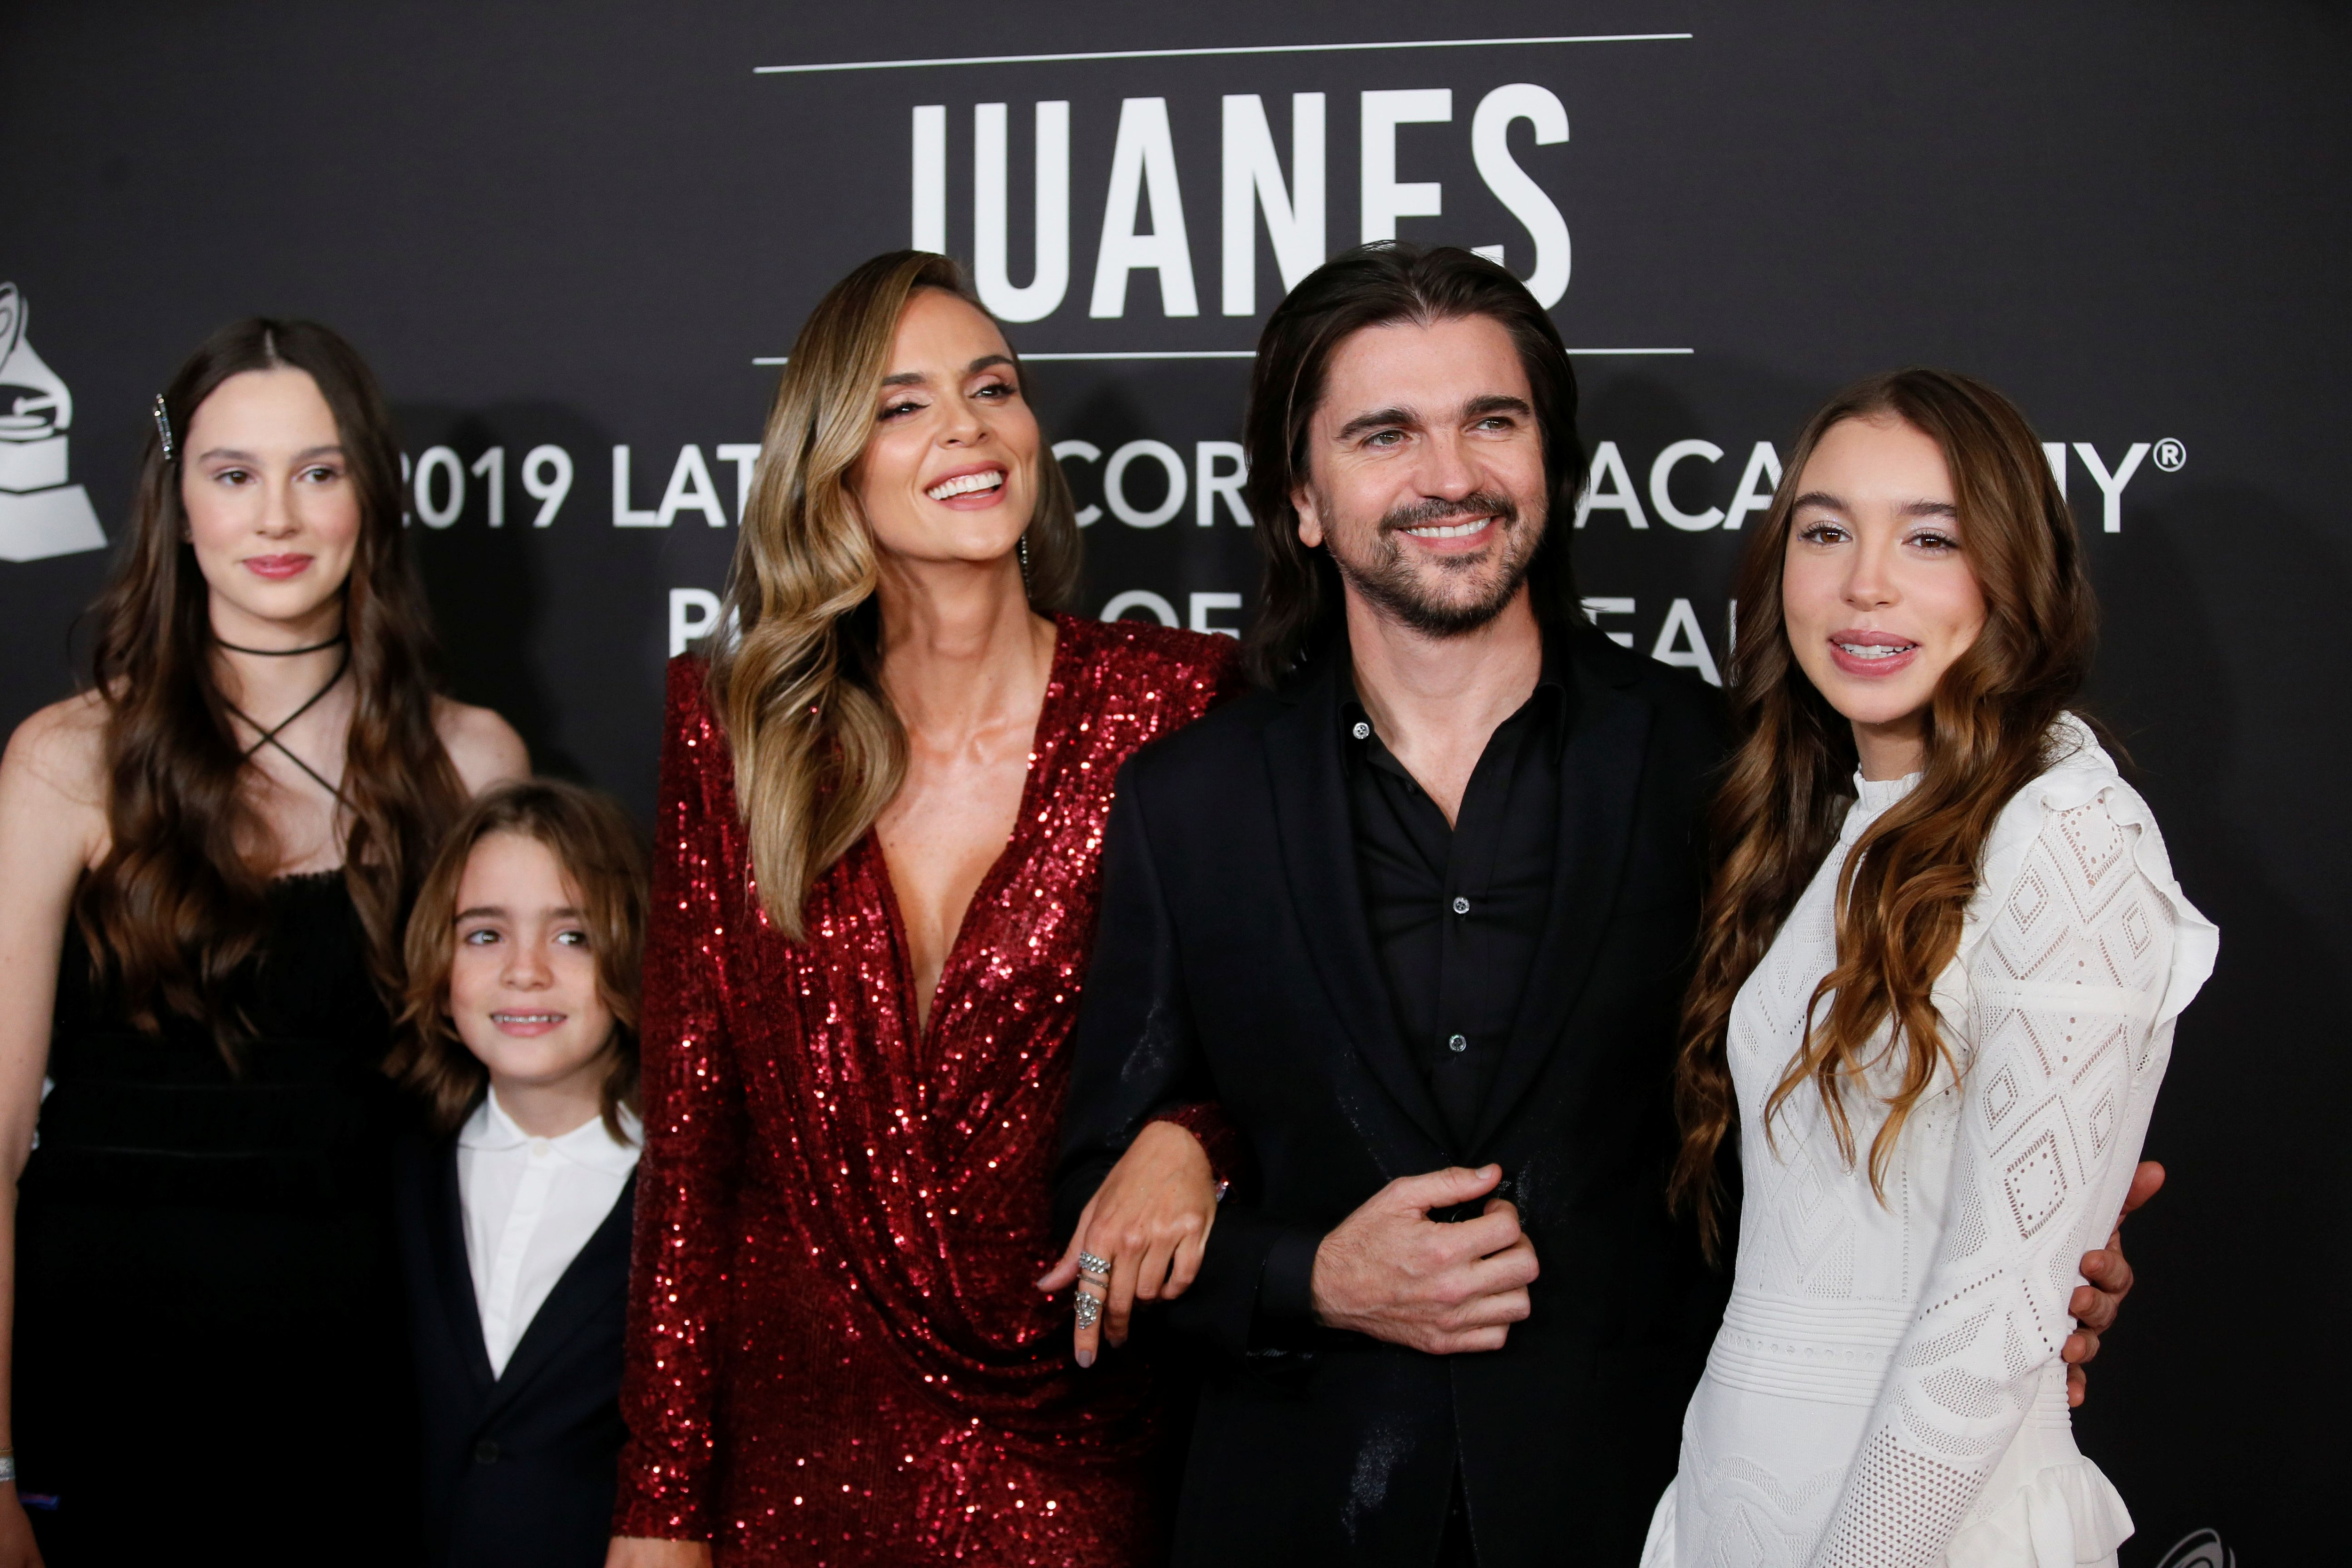 Musician Juanes poses with his family including his wife Karen Martinez, daughters Luna and Paloma and son, Dante at the 2019 Latin Recording Academy Person of the Year gala in his honor in Las Vegas, Nevada, U.S. November 13, 2019. REUTERS/Danny Moloshok